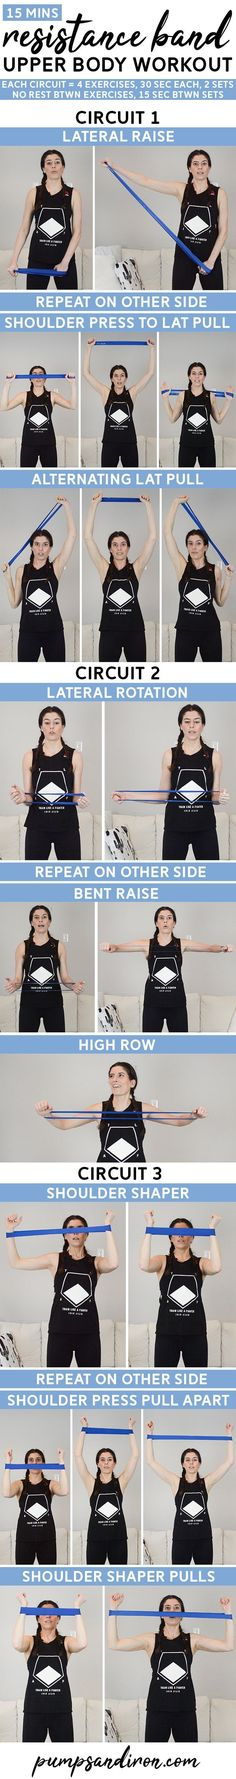 Pin by Sherri Smith on Work It Out Pinterest Exercises, Workout - fresh genetic blueprint band